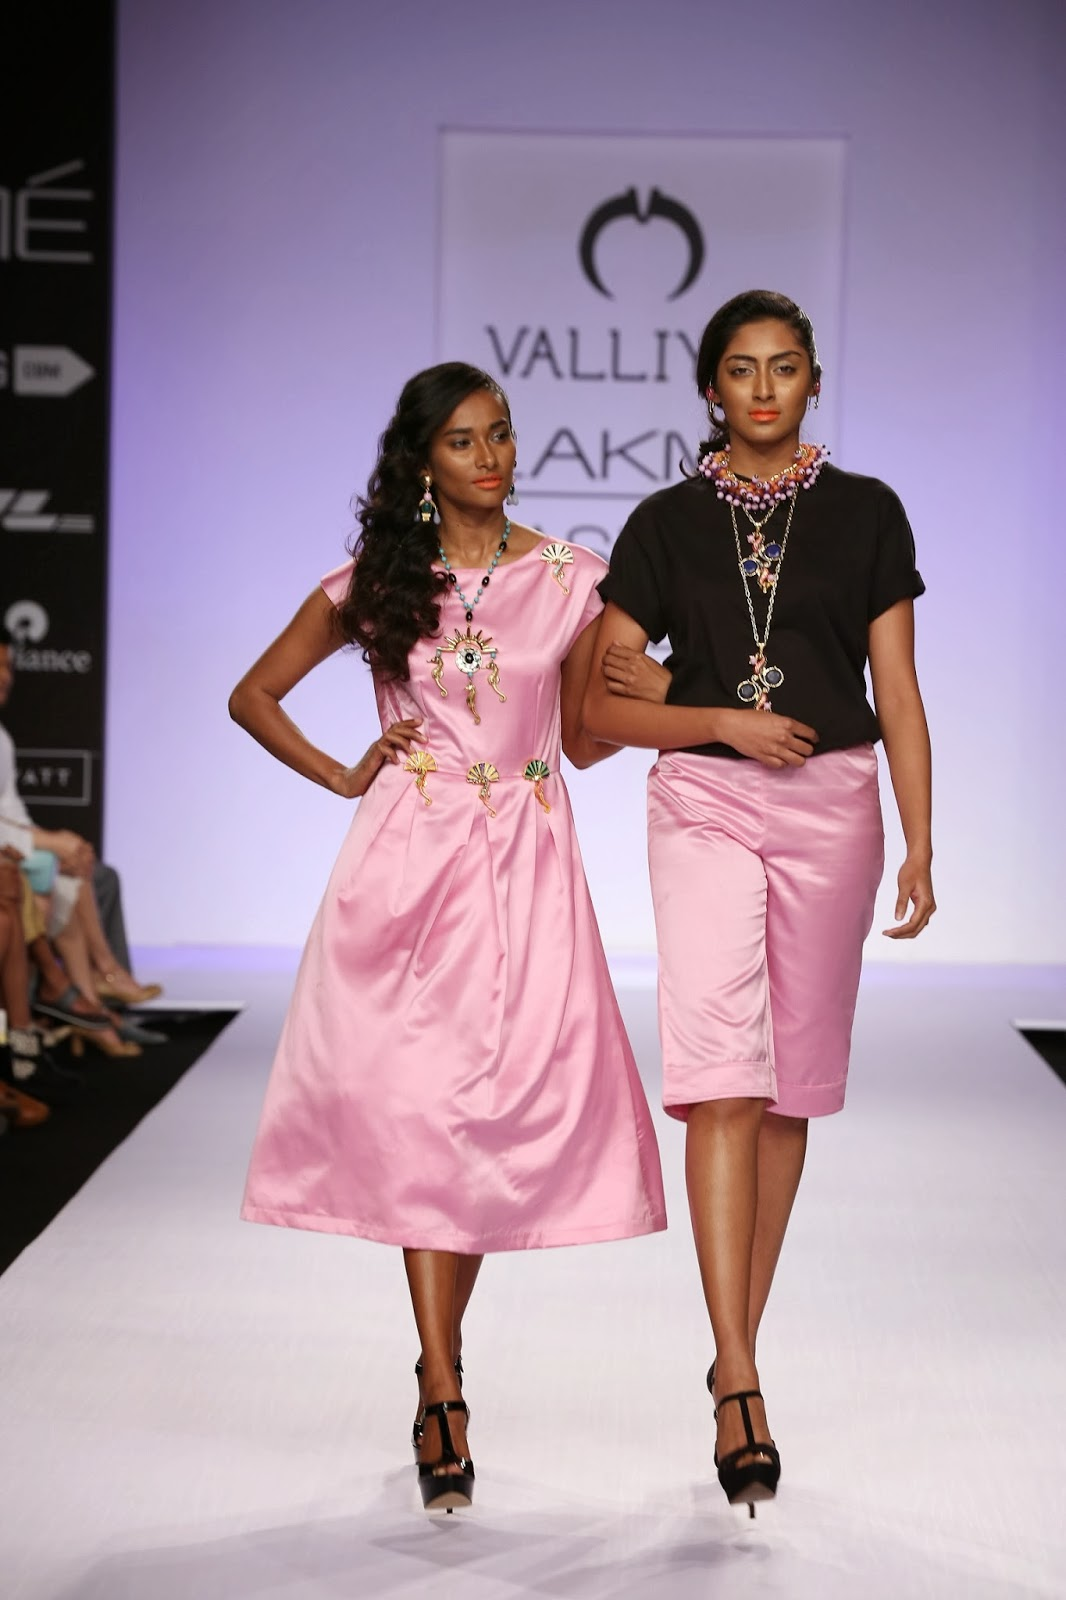 NITYA ARORA OF VALLIYAN PRESENTED A WONDERLAND OF JEWELLERY AT LAKMÉ FASHION WEEK SUMMER/RESORT 2014